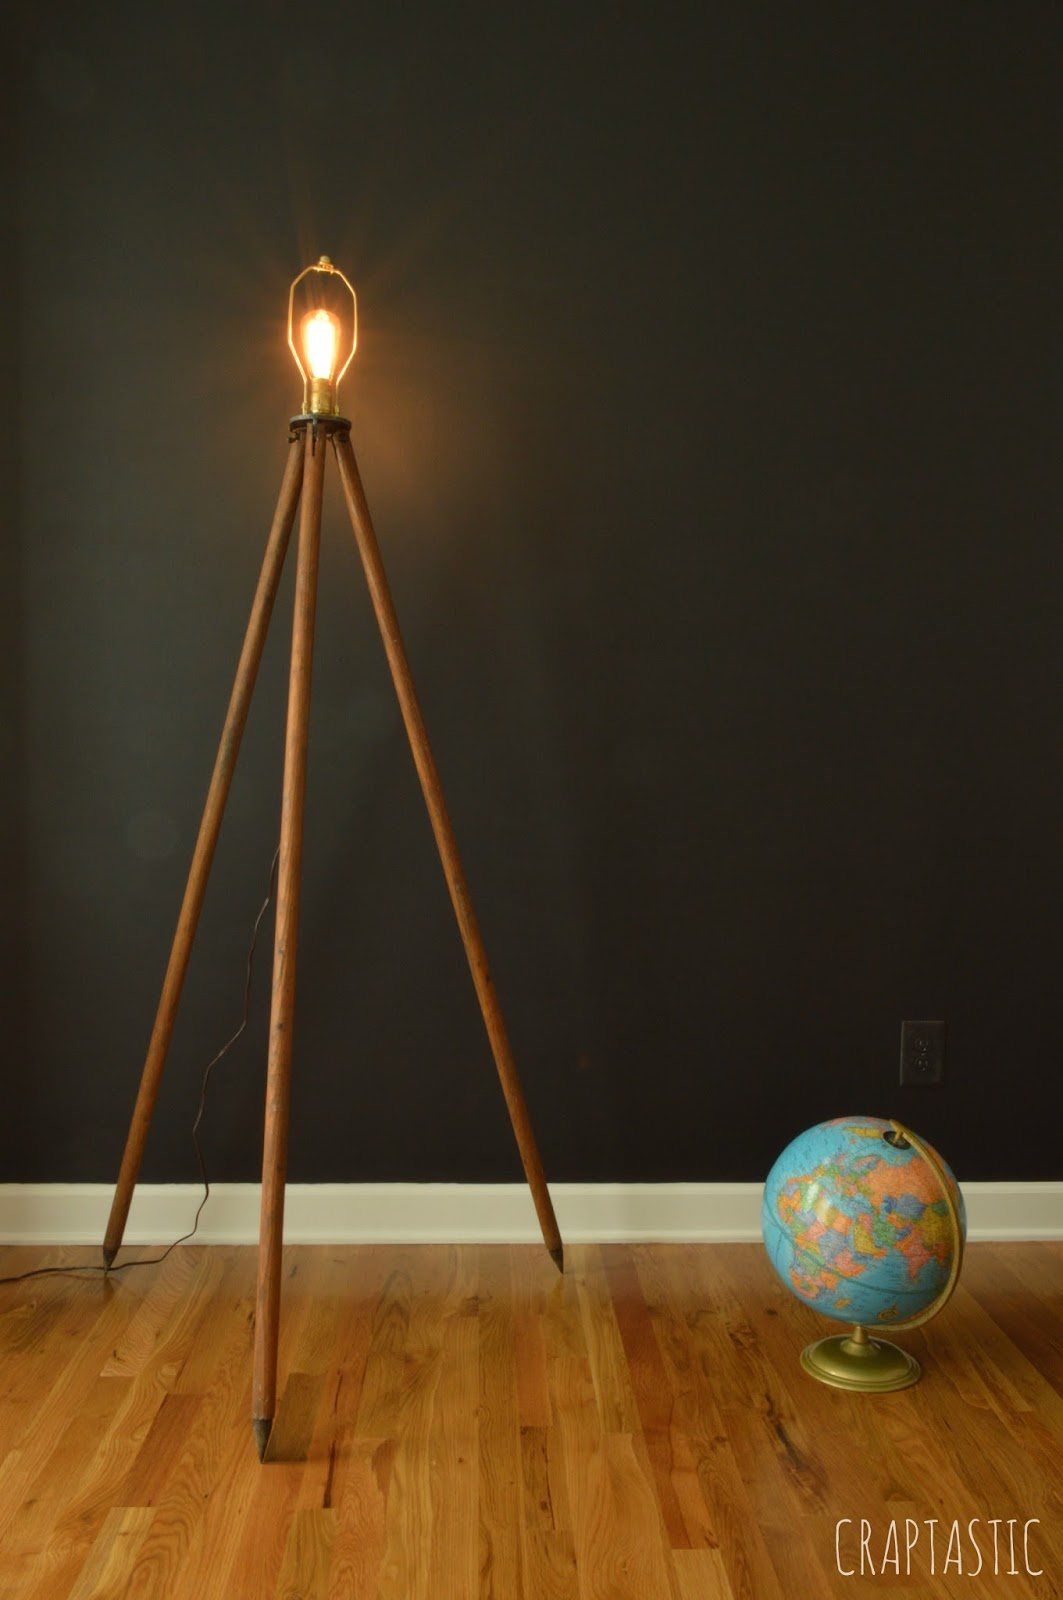 Decor awesome tripod lamp for interior lighting ideas tripod floor lamp ikea tripod lamp target wood lamp solutioingenieria